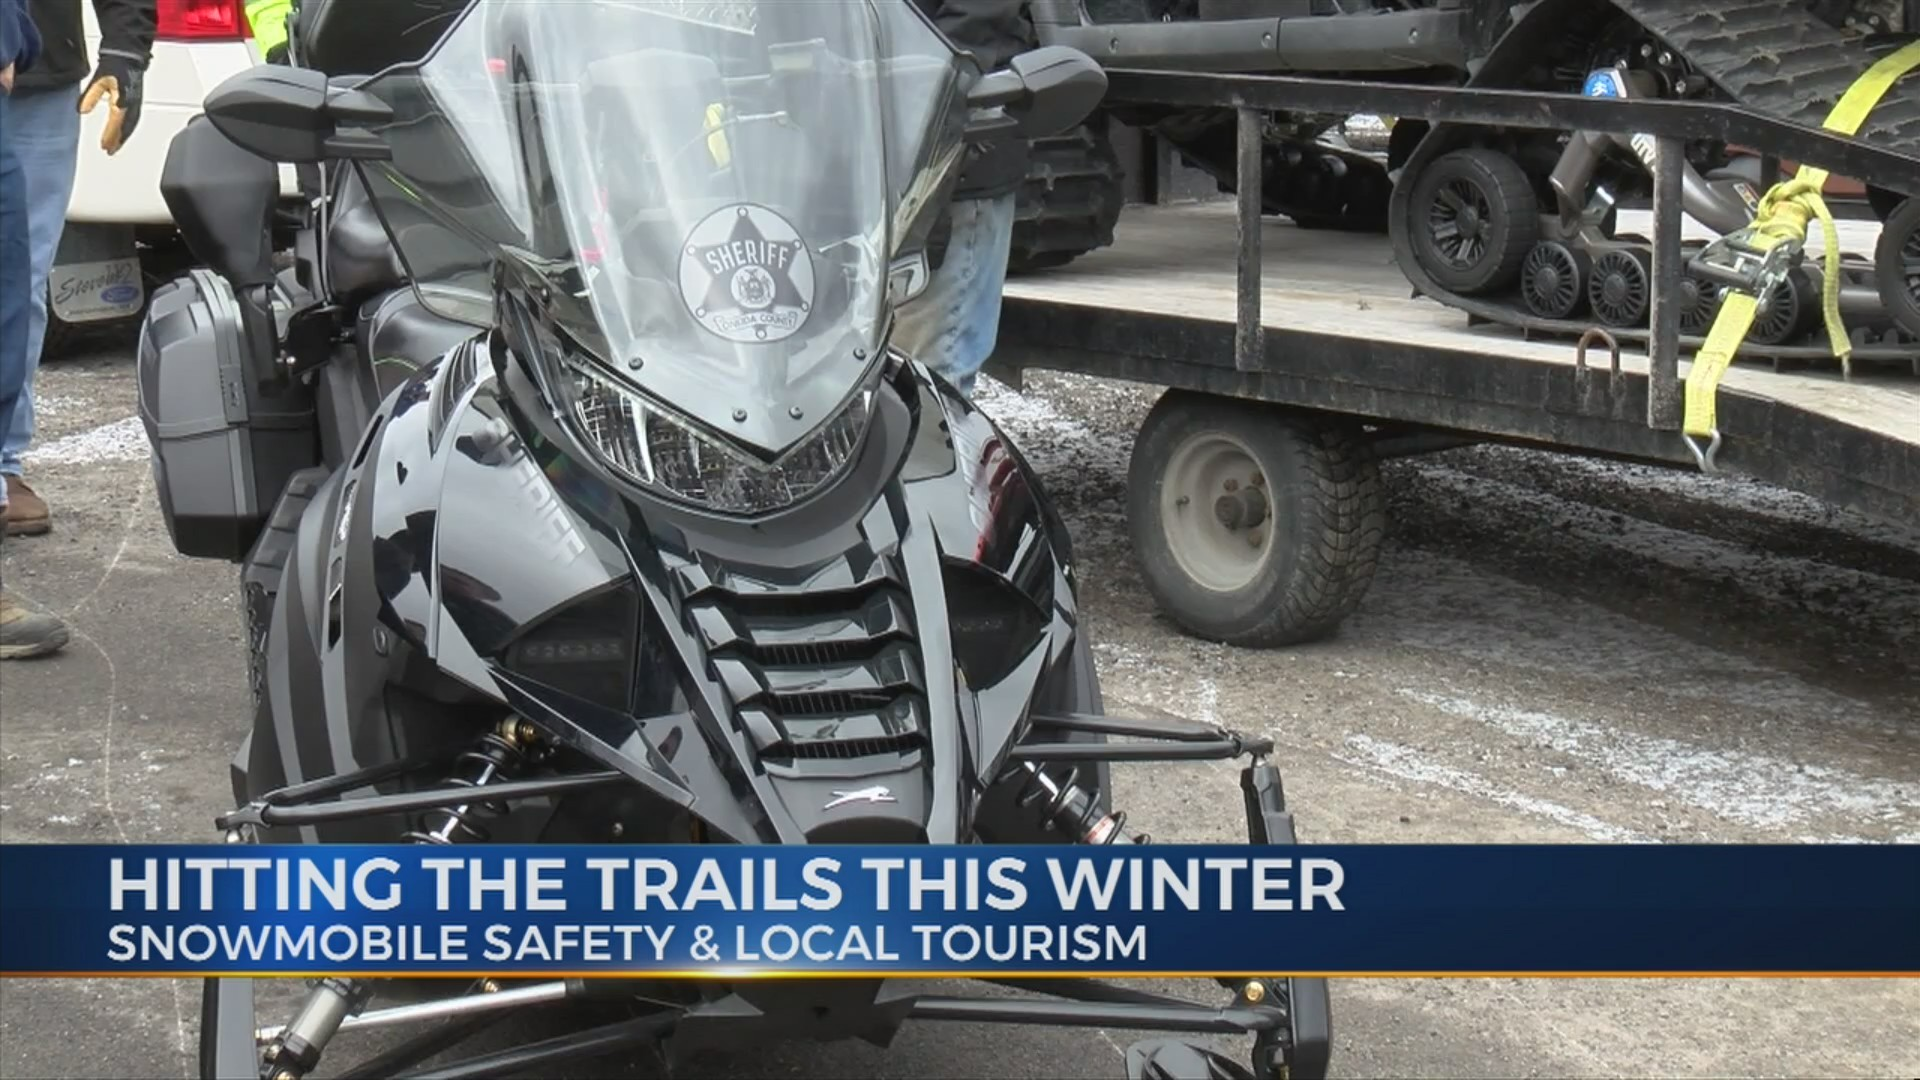 Hitting the Trails This Winter